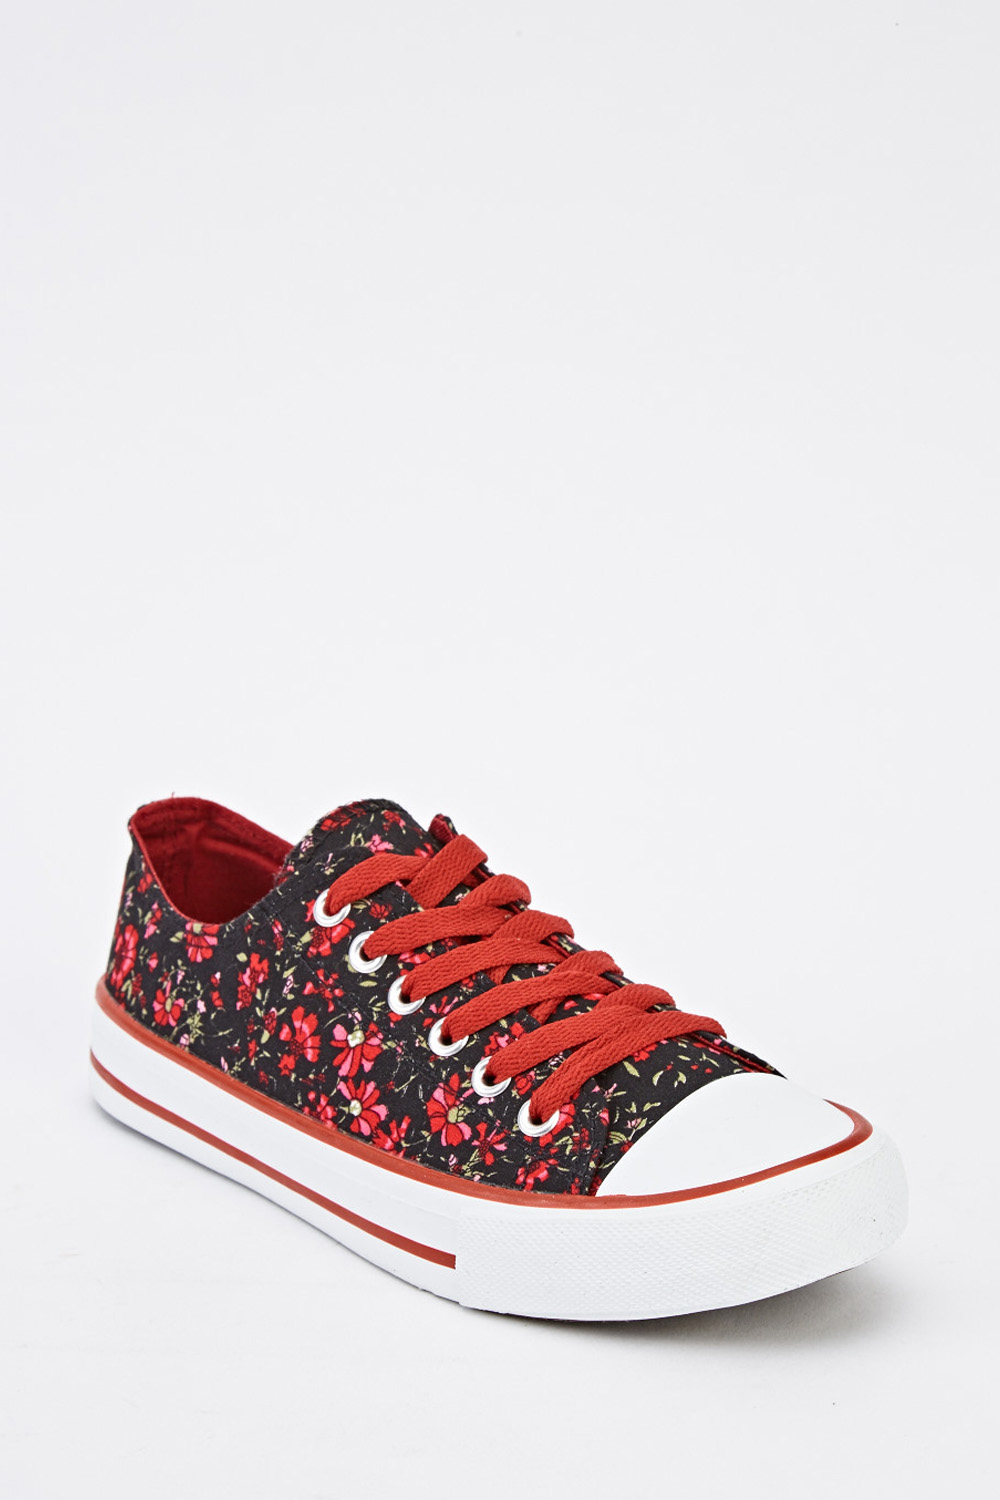 317a52cc736a9 Floral Printed Canvas Shoes - Just £5